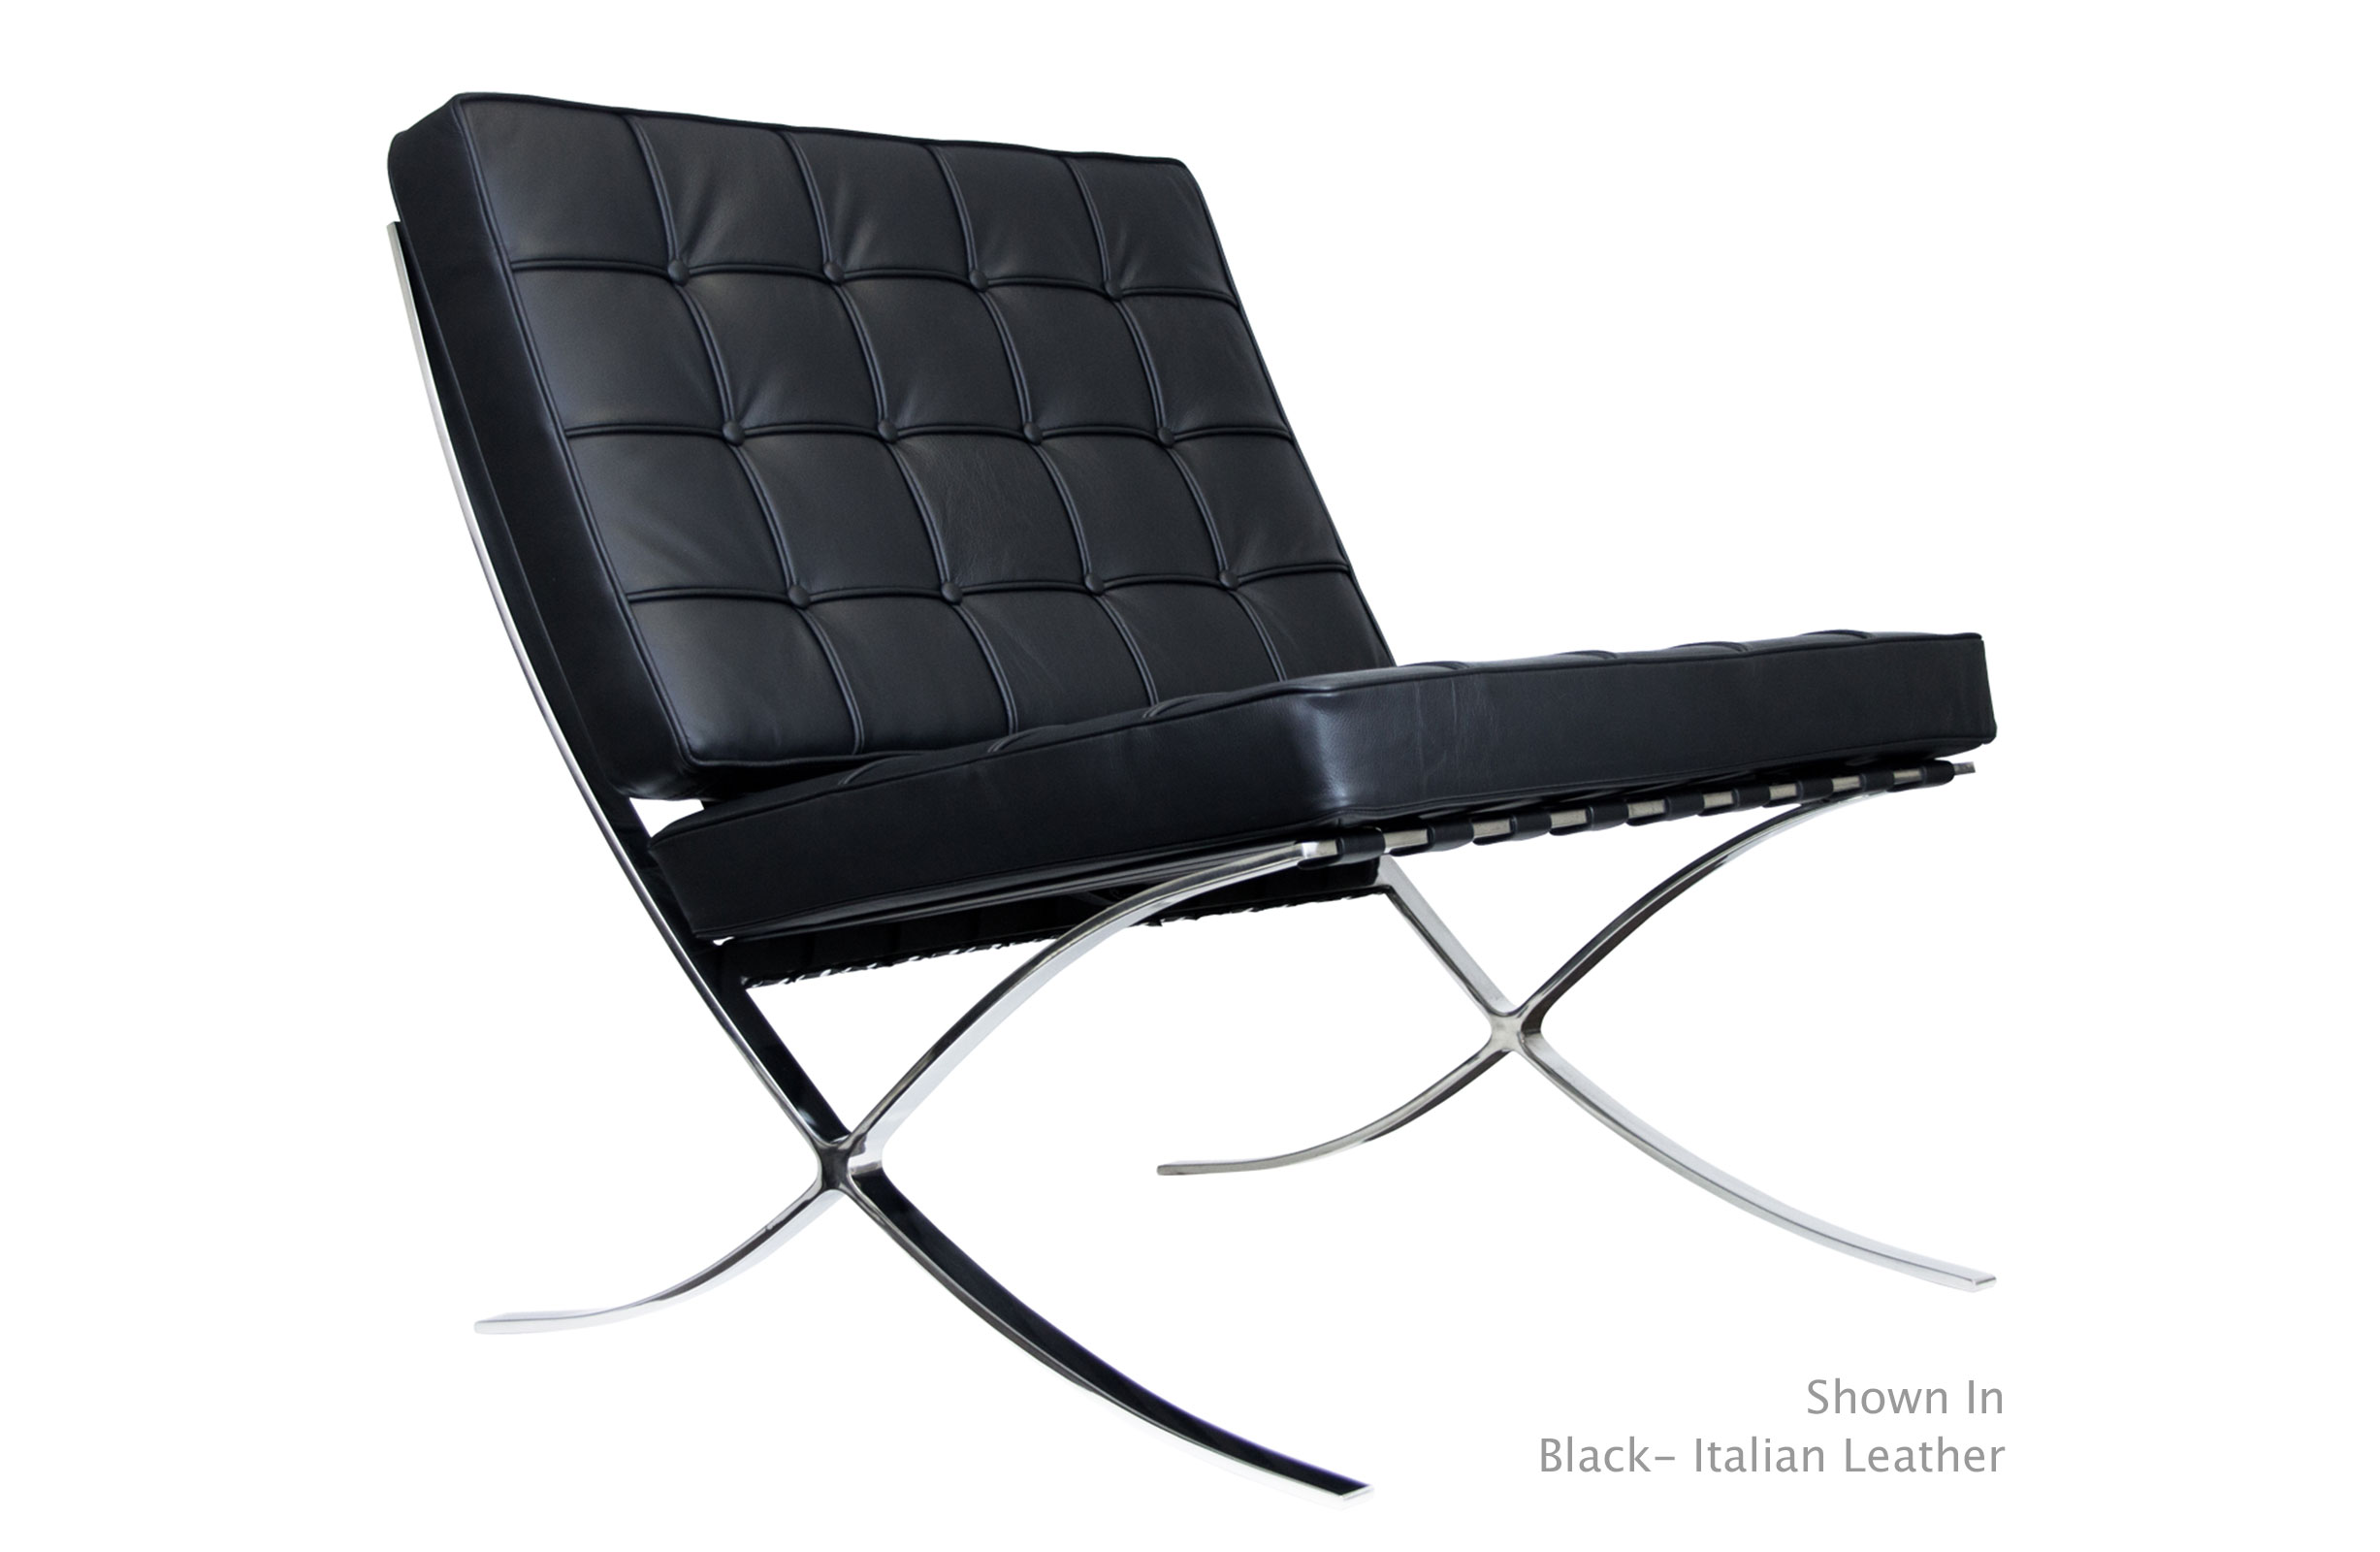 mies van der rohe chair. Black Bedroom Furniture Sets. Home Design Ideas